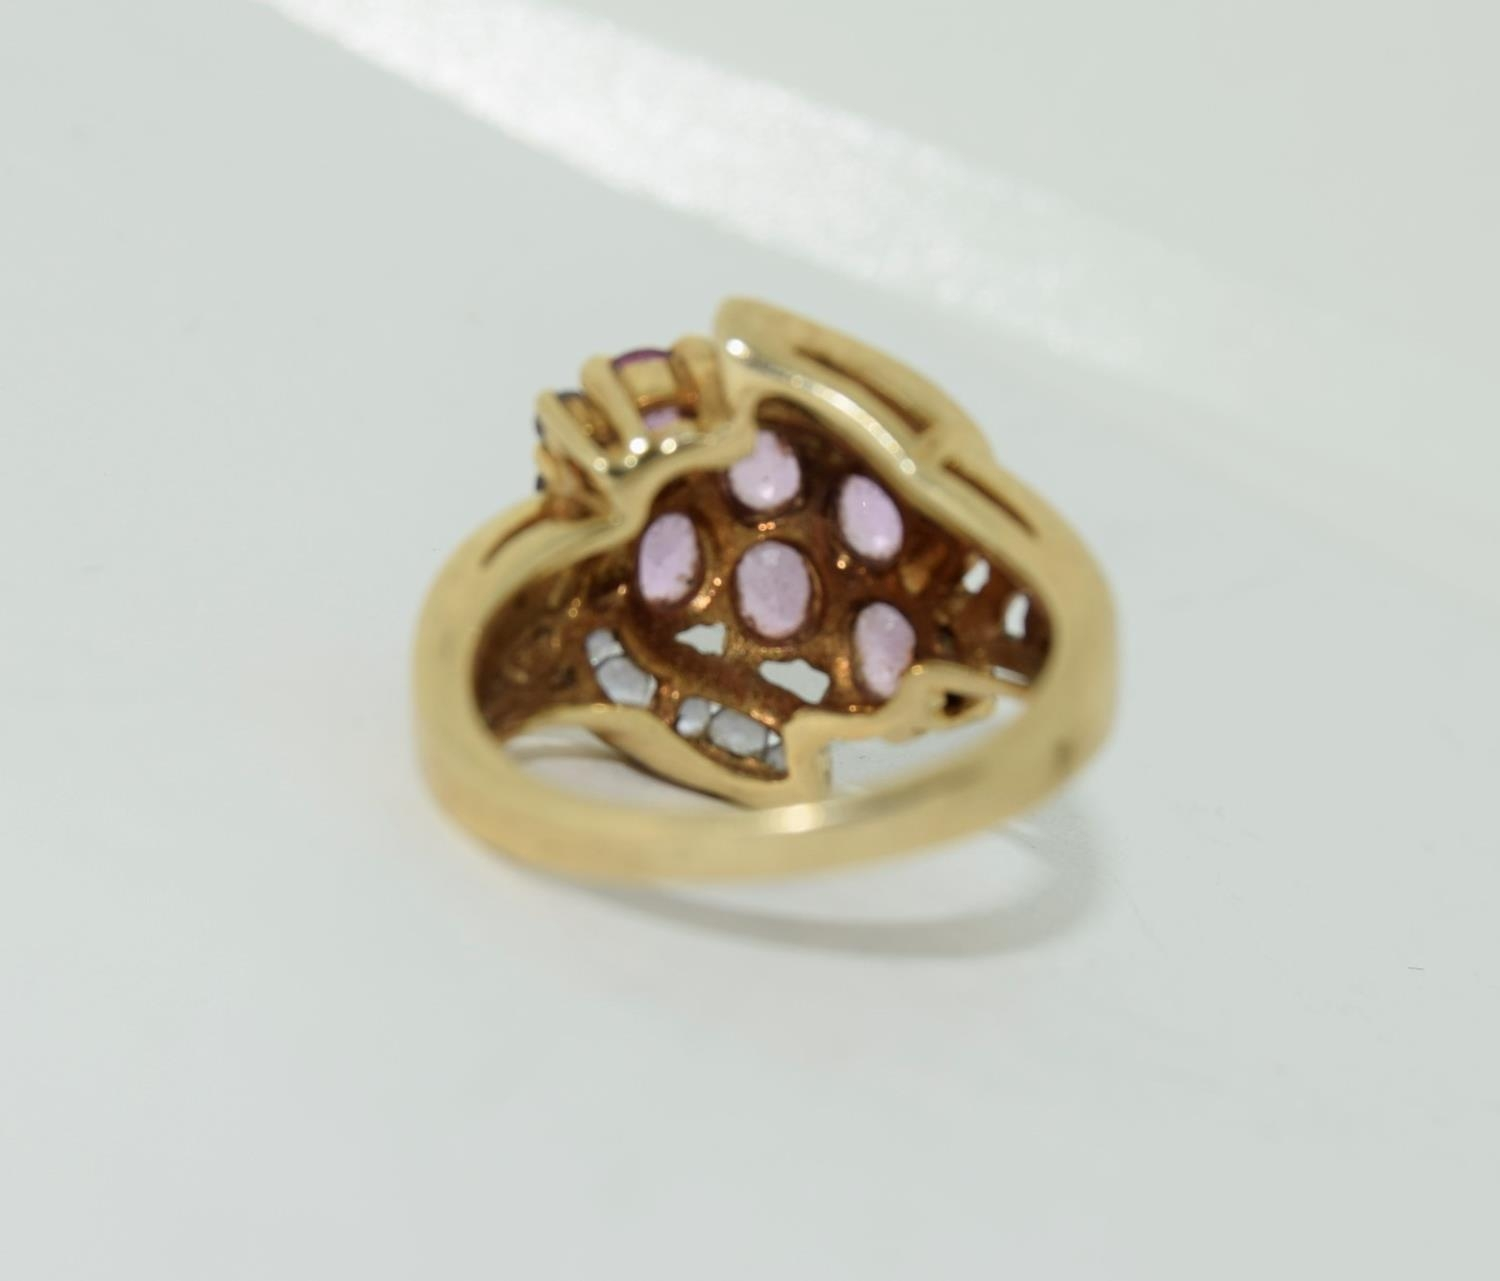 9ct gold ladies pink tourmaline and sapphire twist ring size L 4.9gm - Image 6 of 10